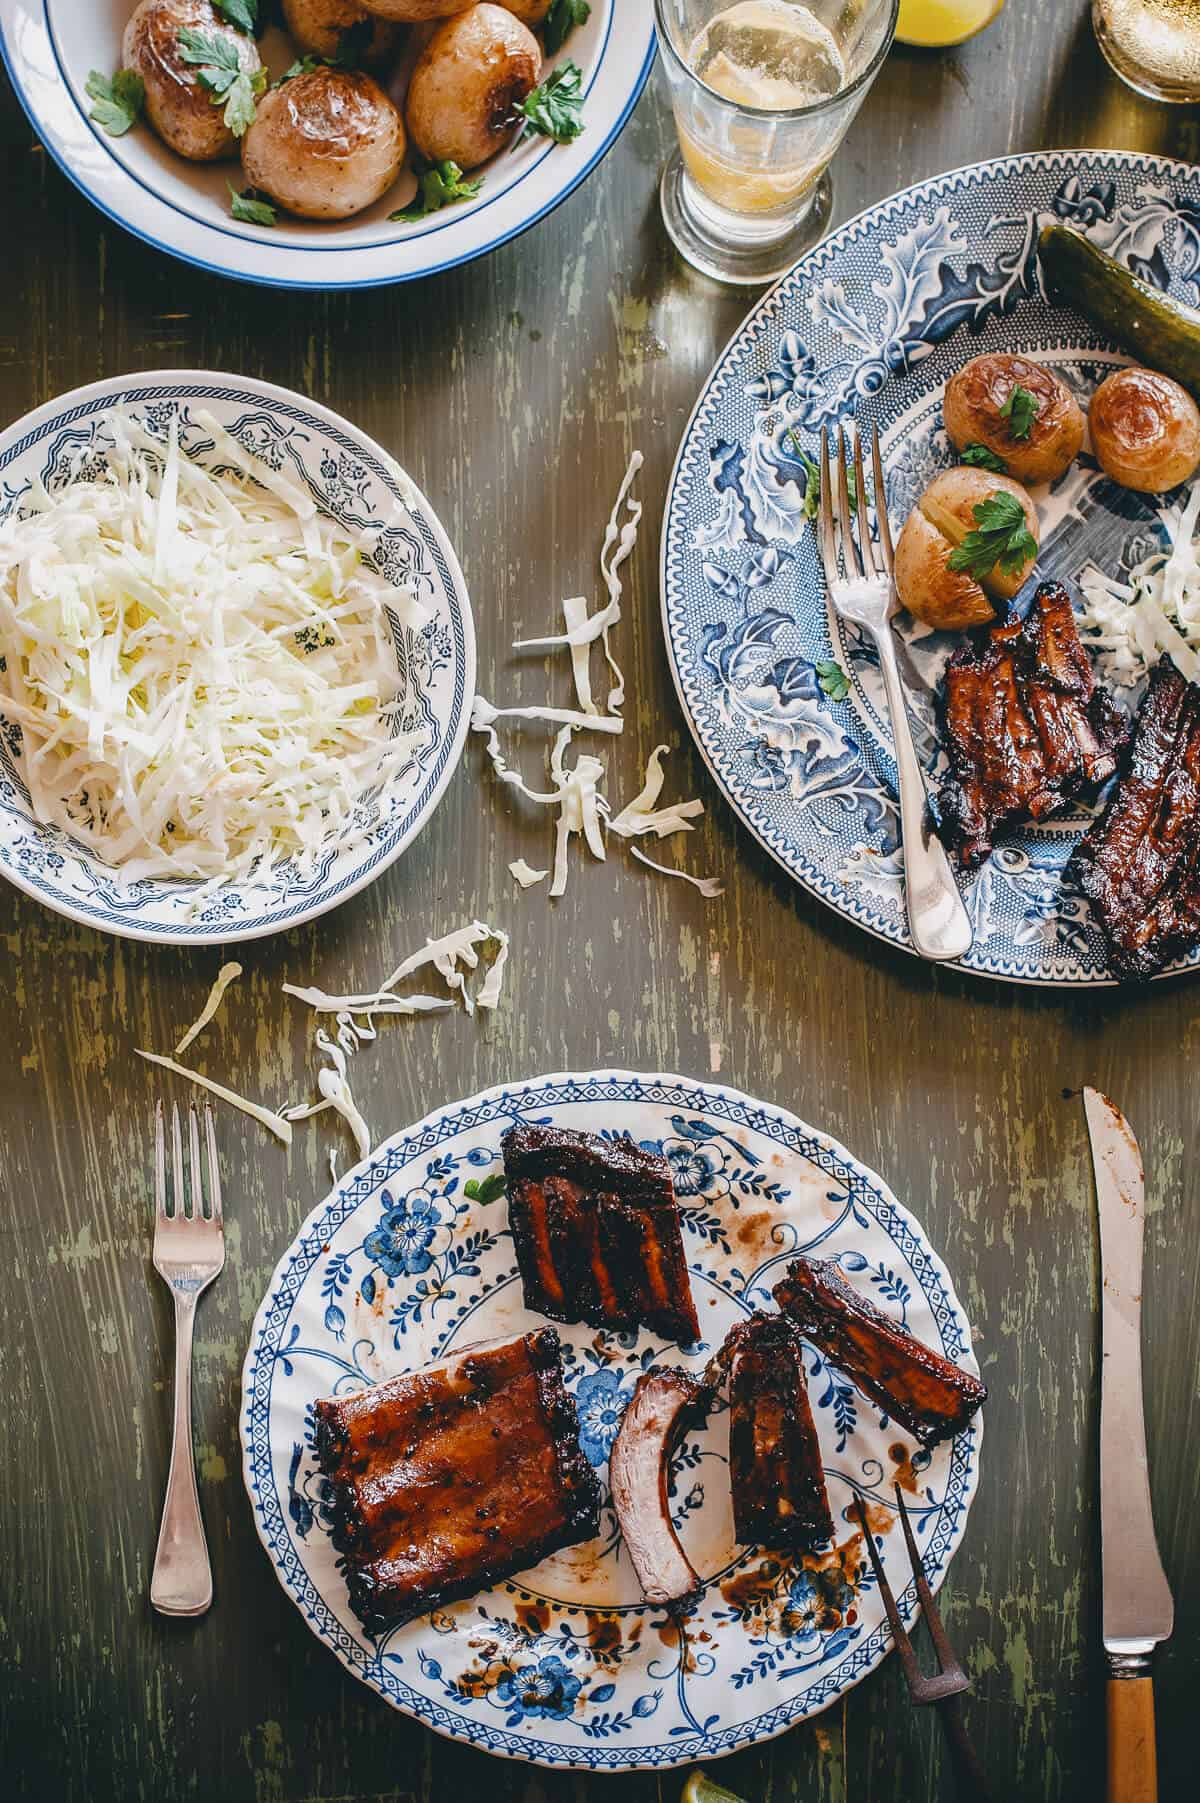 a table with cooked ribs coleslaw and baked potatoes